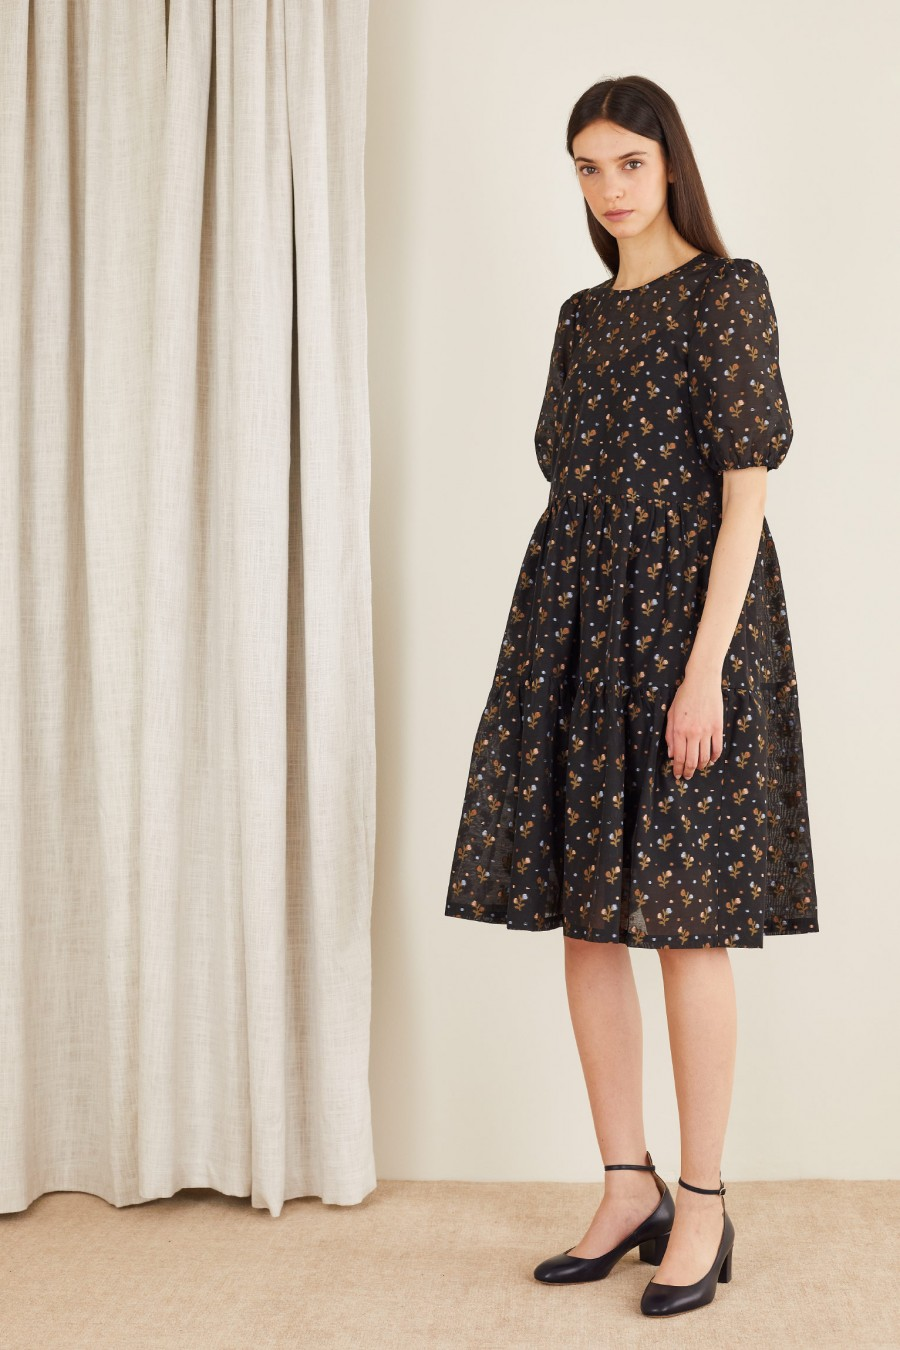 dress with jacquard flowers on a black background